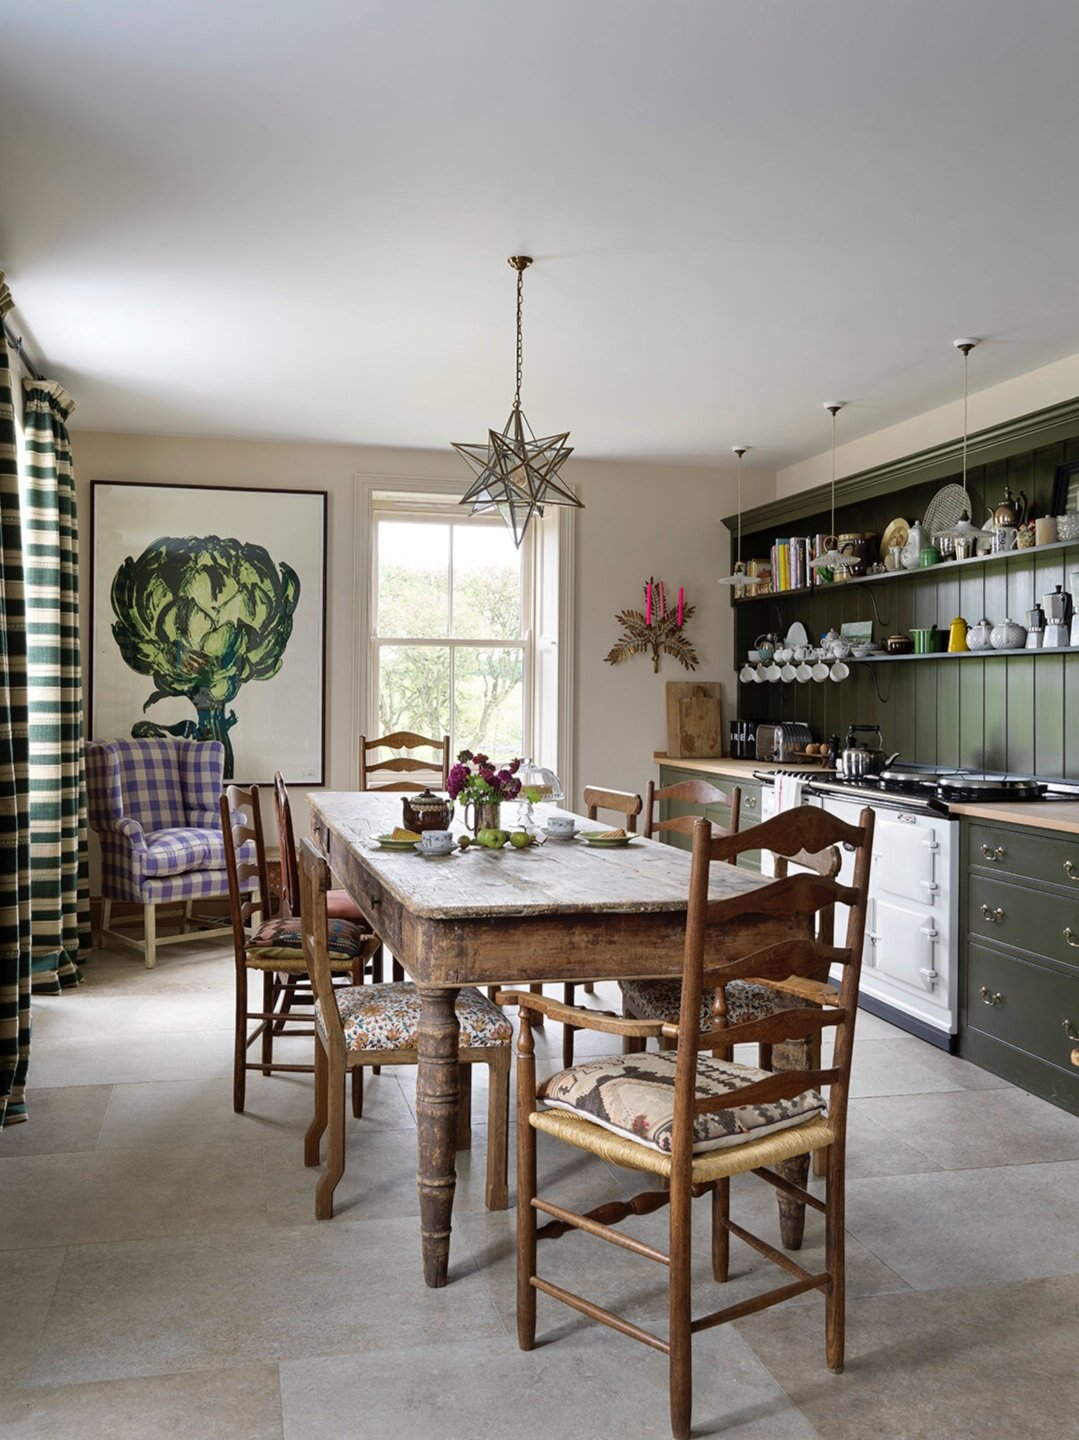 Green Kitchen Cabinets Farmhouse Dining Table Eat In Rita Konig Plaid Curtains North Farm England Home Katie Considers